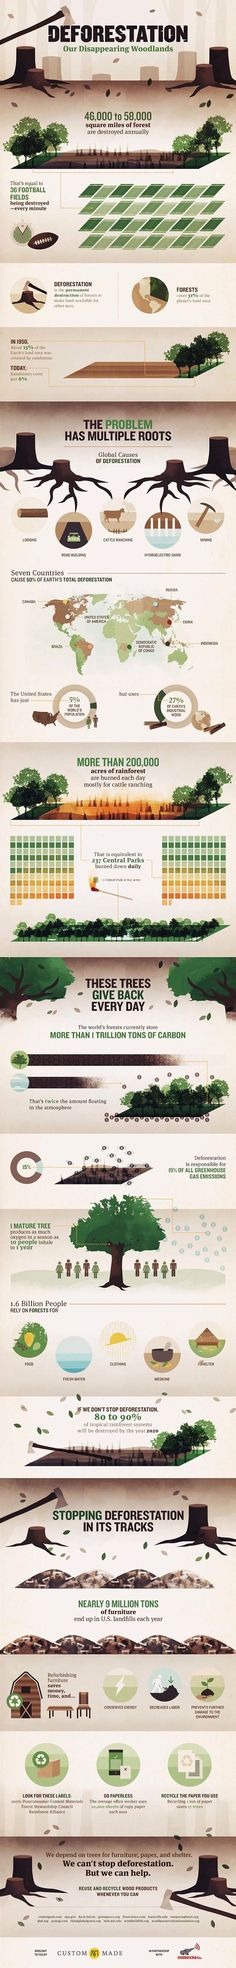 Earth: ~ Deforestation: Our Disappearing Woodlands. You've Heard About This Problem With Our Trees, But Do You Really Know How Big It Is? Environmental Education, Environmental Science, Environmentalist, Do You Really, Save The Planet, Earth Science, Global Warming, Change The World, Mother Earth